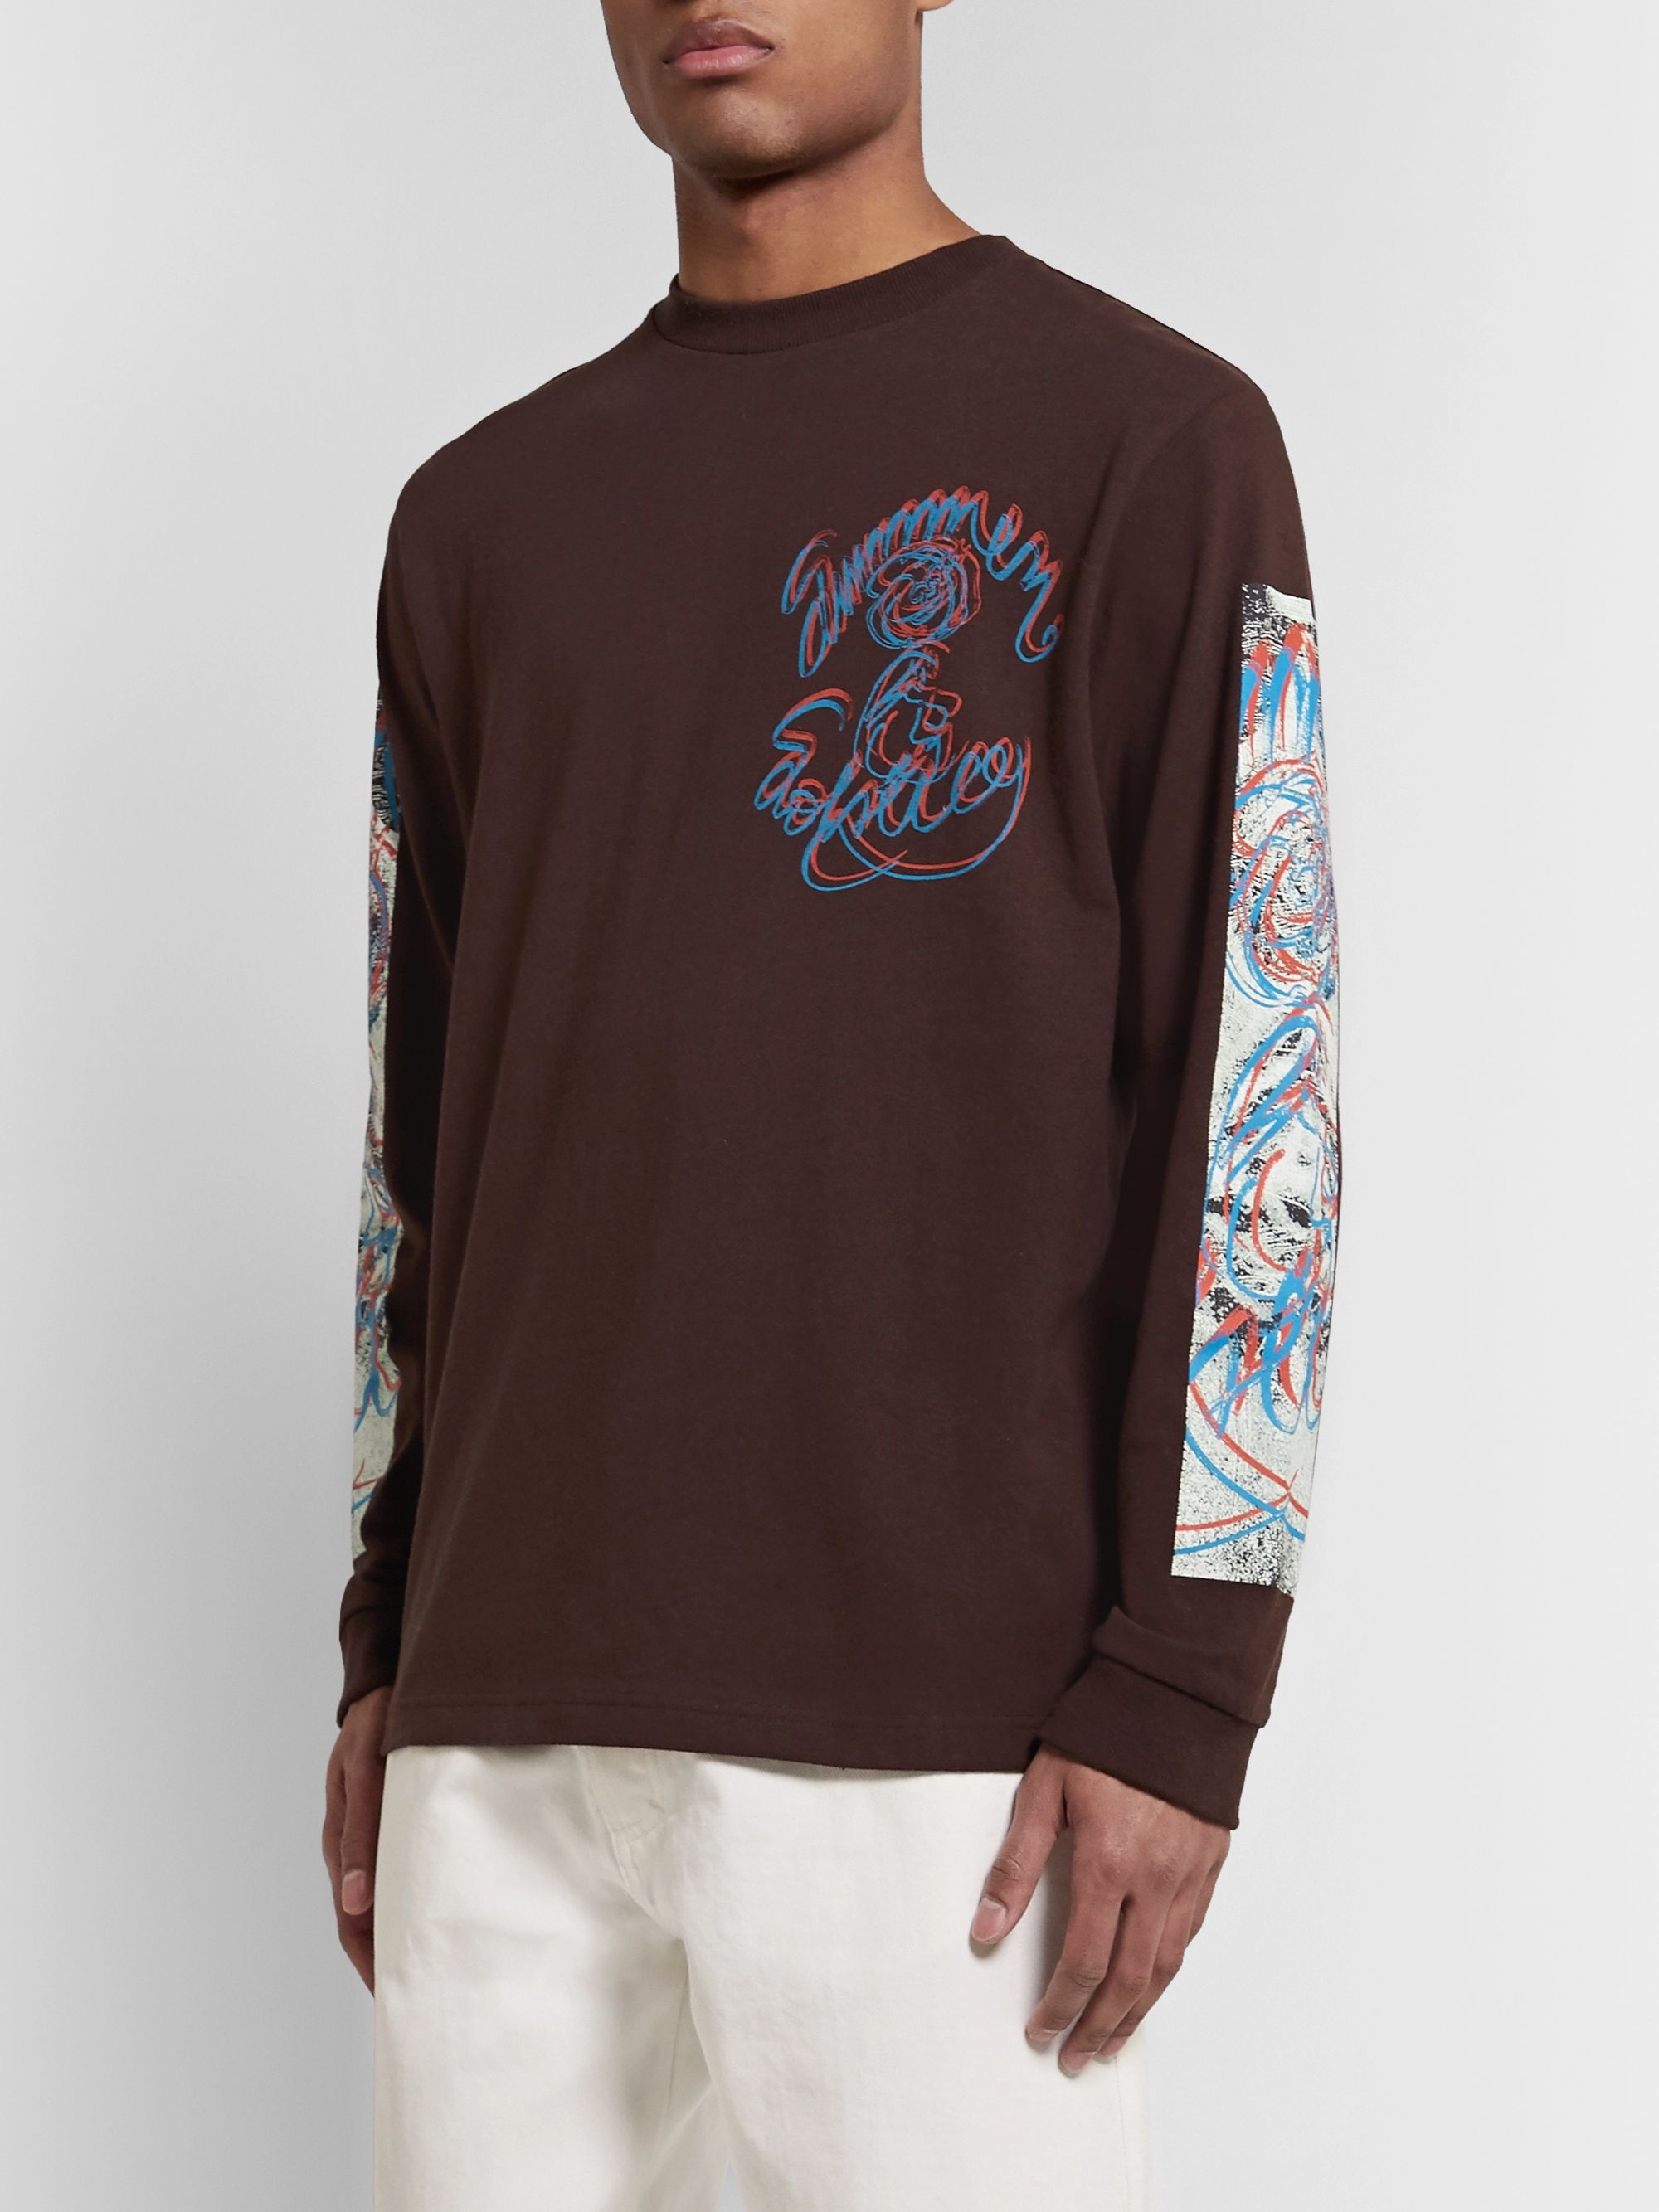 Acne Studios Printed Cotton-Jersey T-Shirt